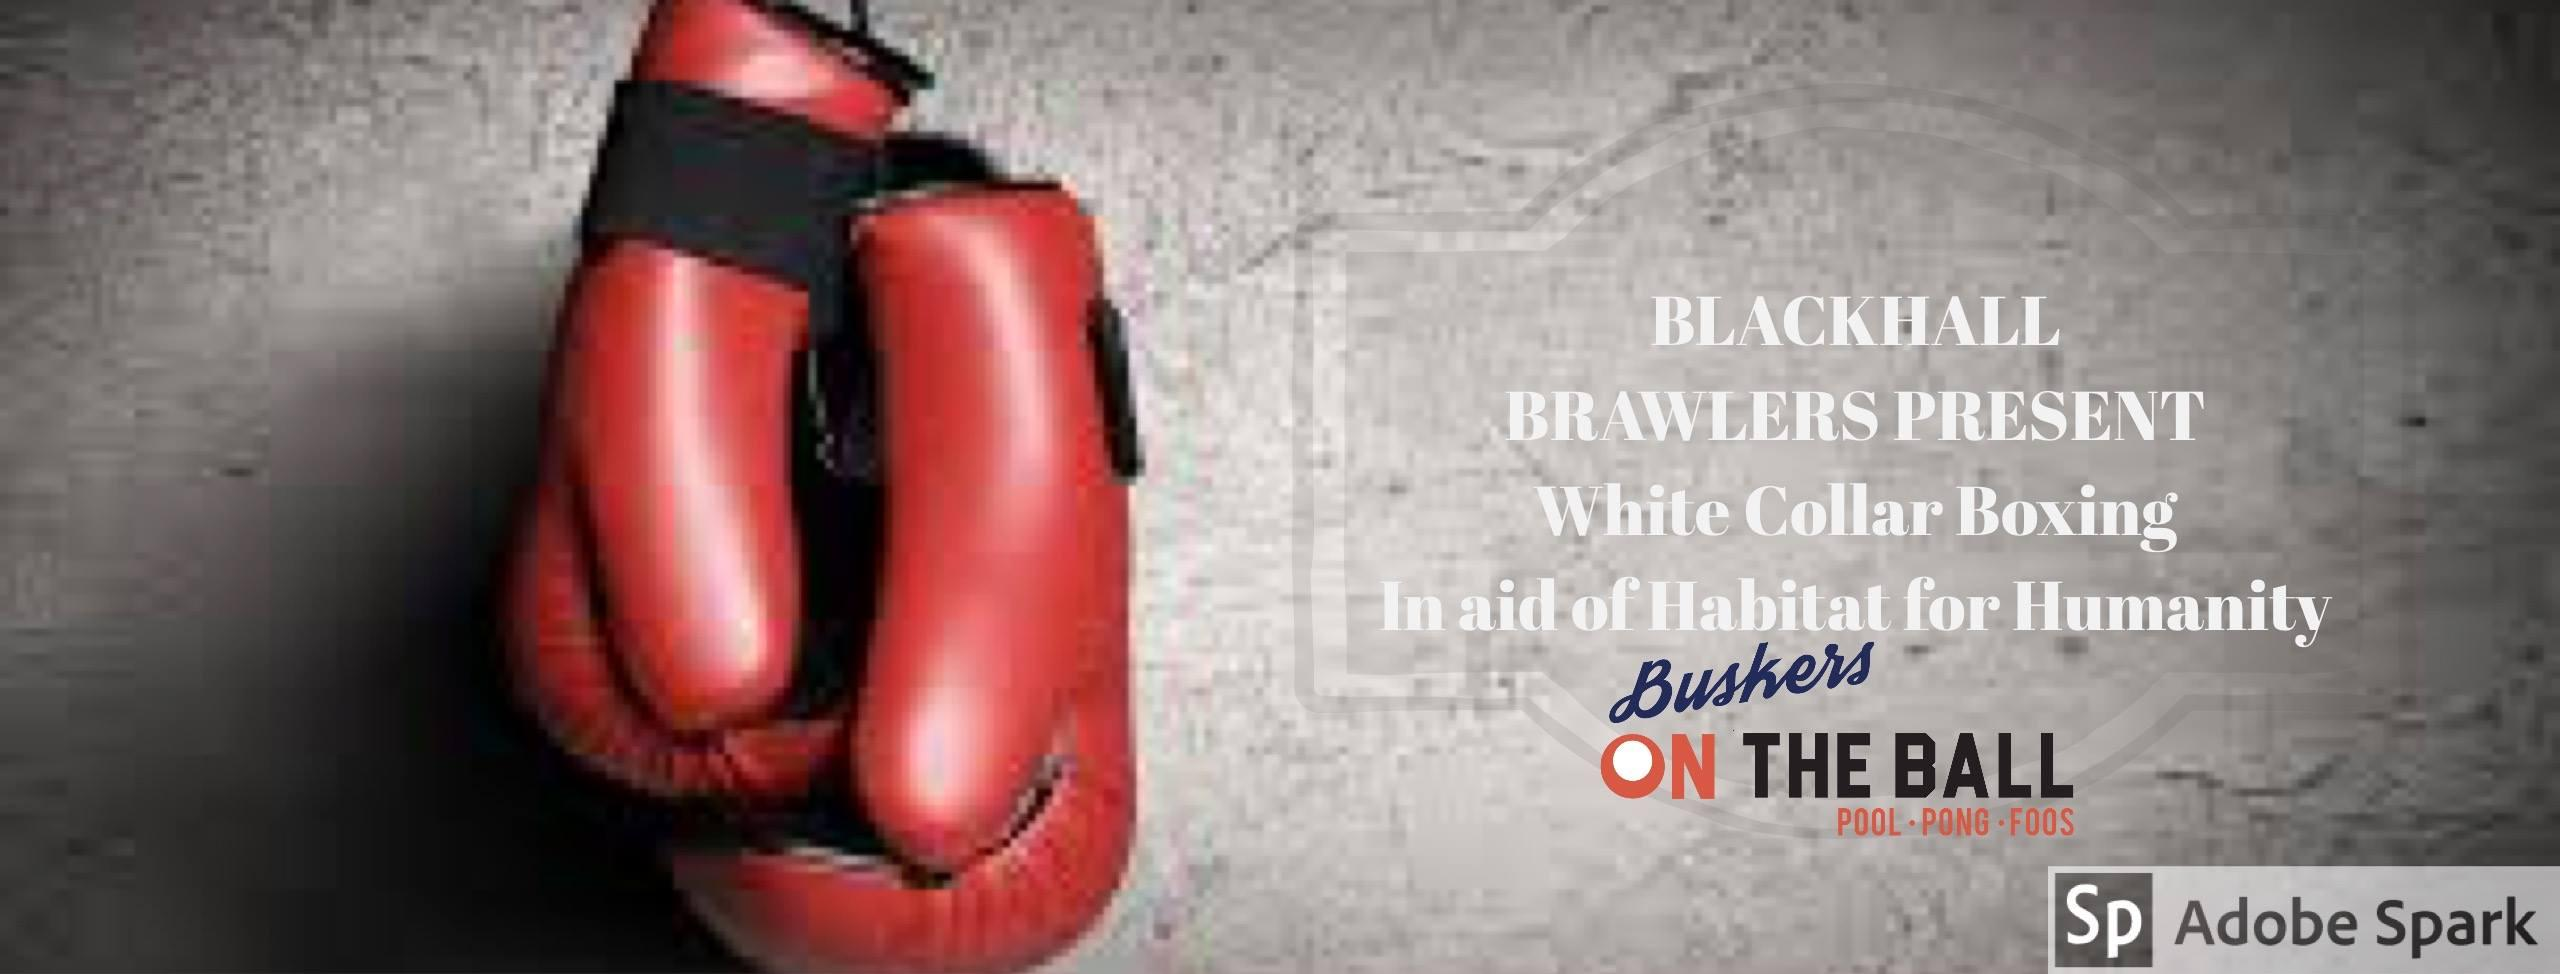 Blackhall Brawlers Present White Collar Boxing in aid of Habitat for Humanity